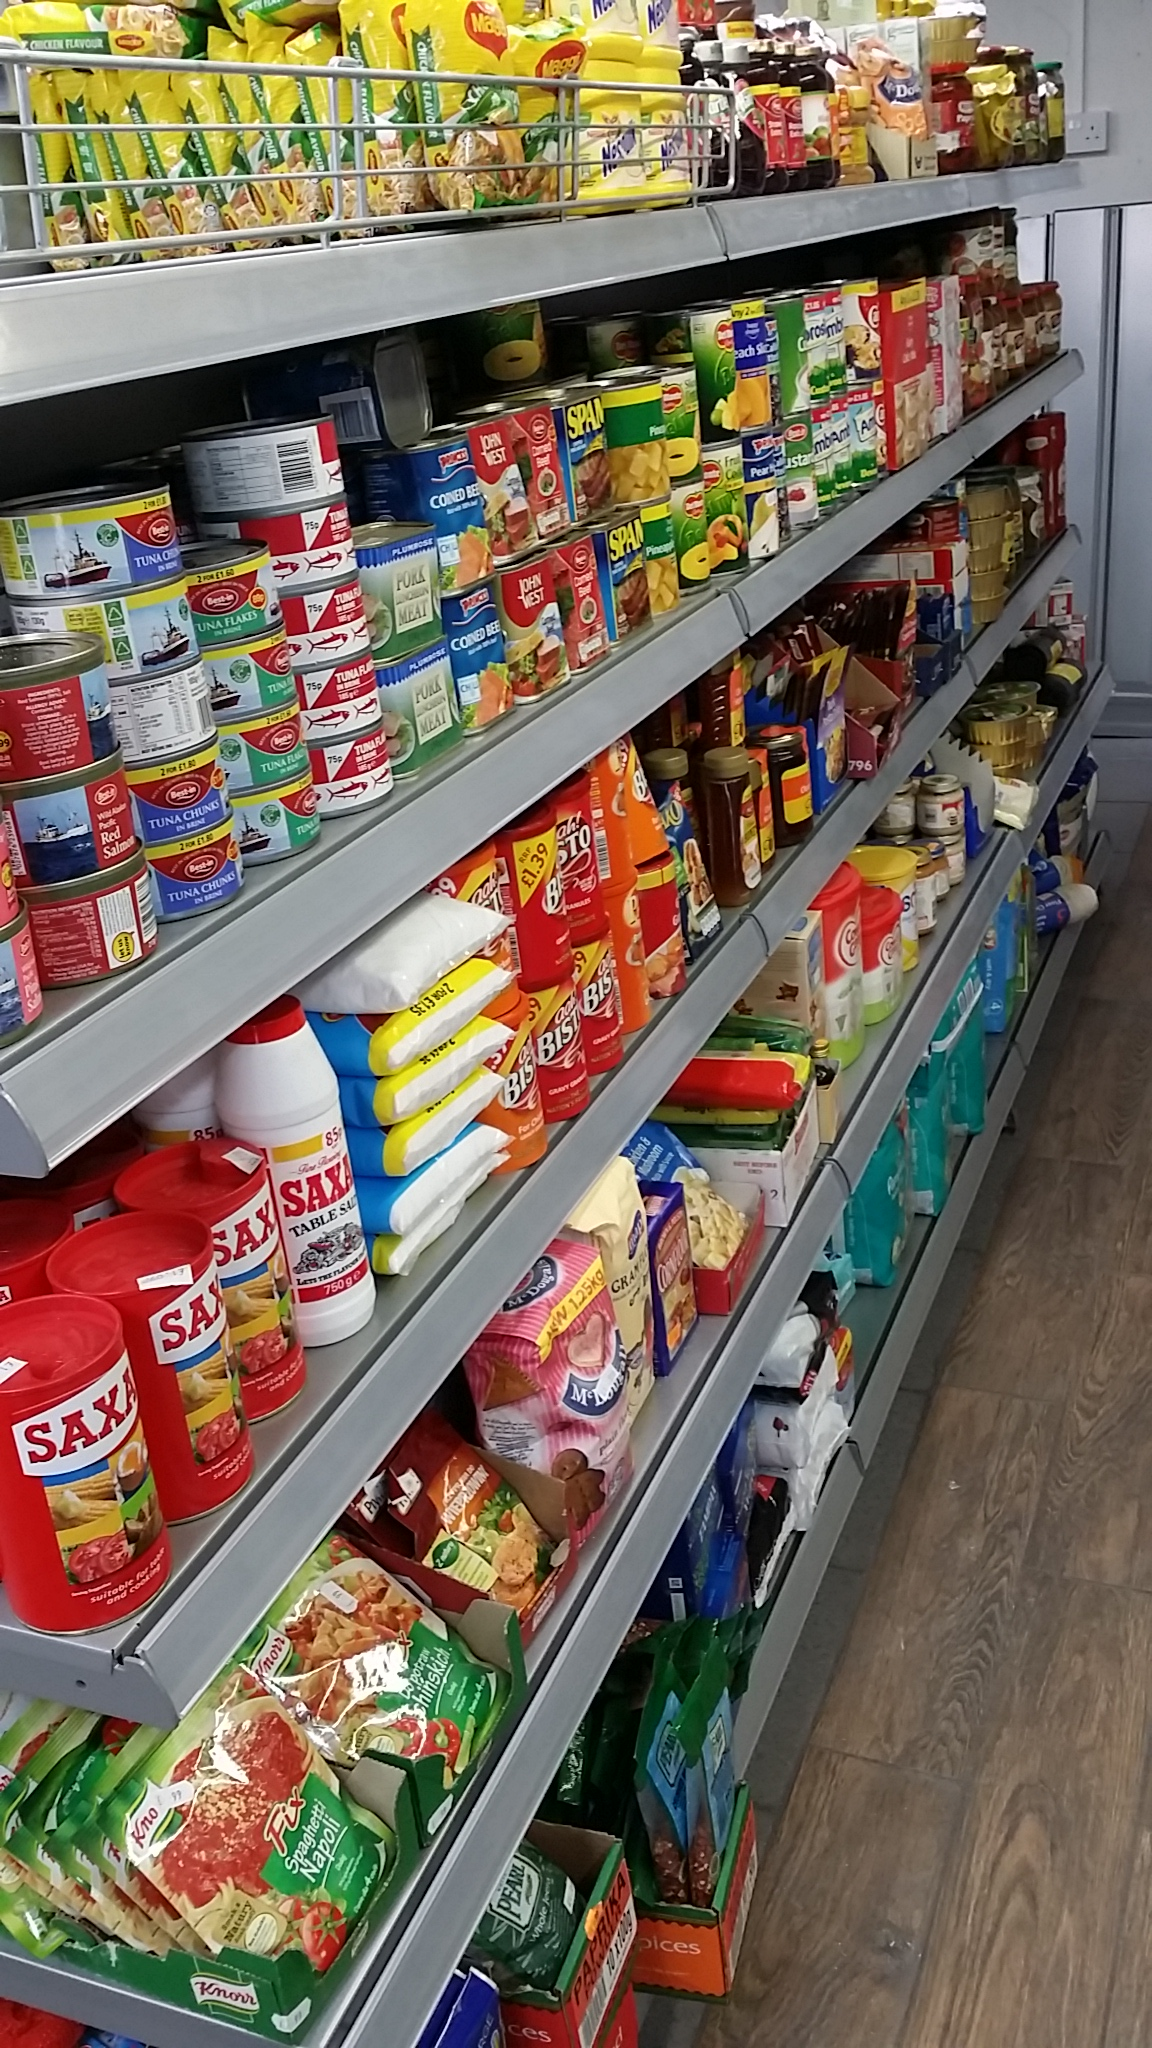 Silver Wall Shelving in Convenience Store